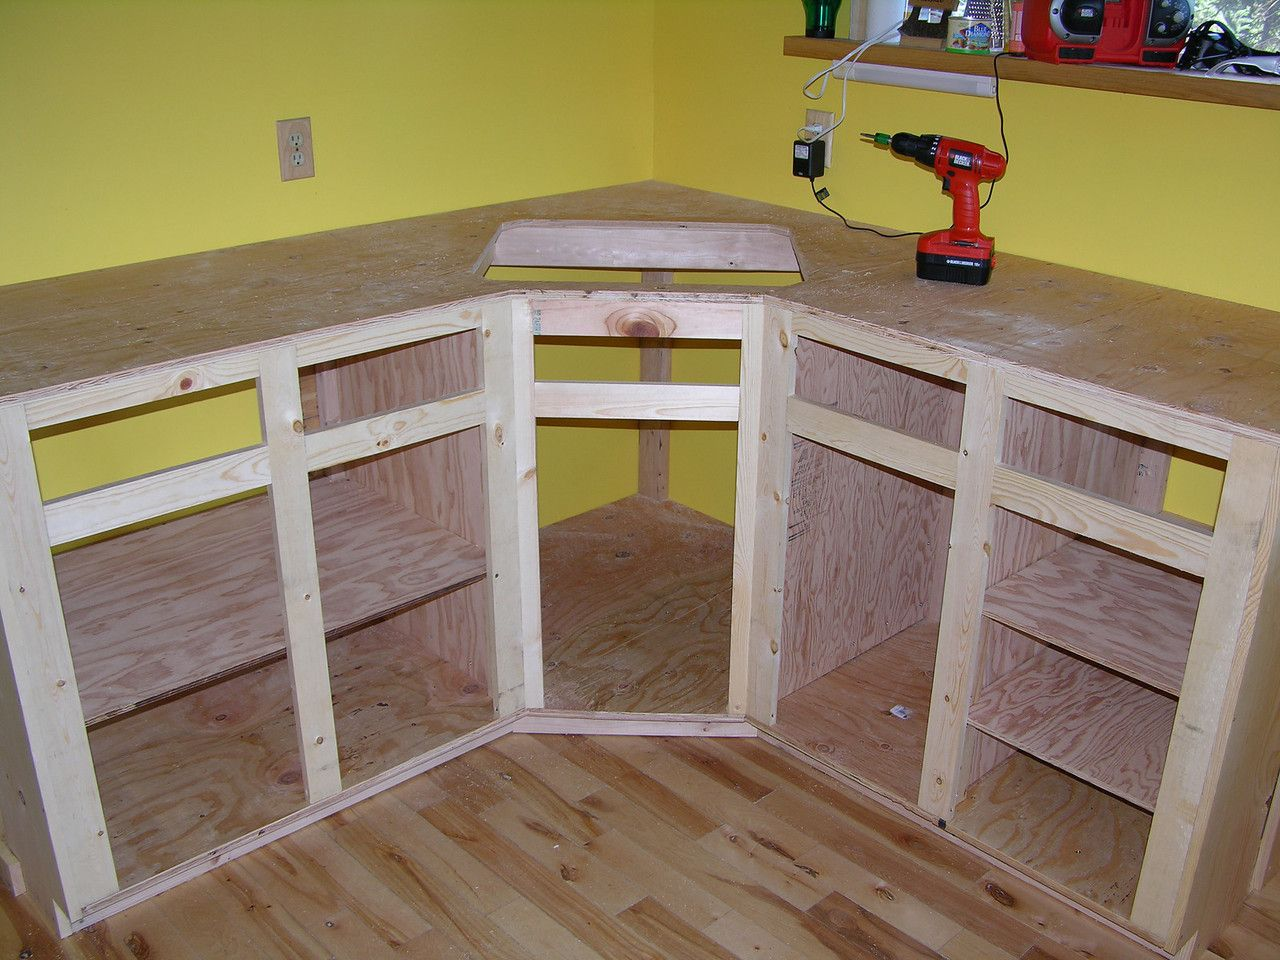 Kitchen base cabinet making - 21 Diy Kitchen Cabinets Ideas Plans That Are Easy Cheap To Build Cabinet Plans And Kitchens